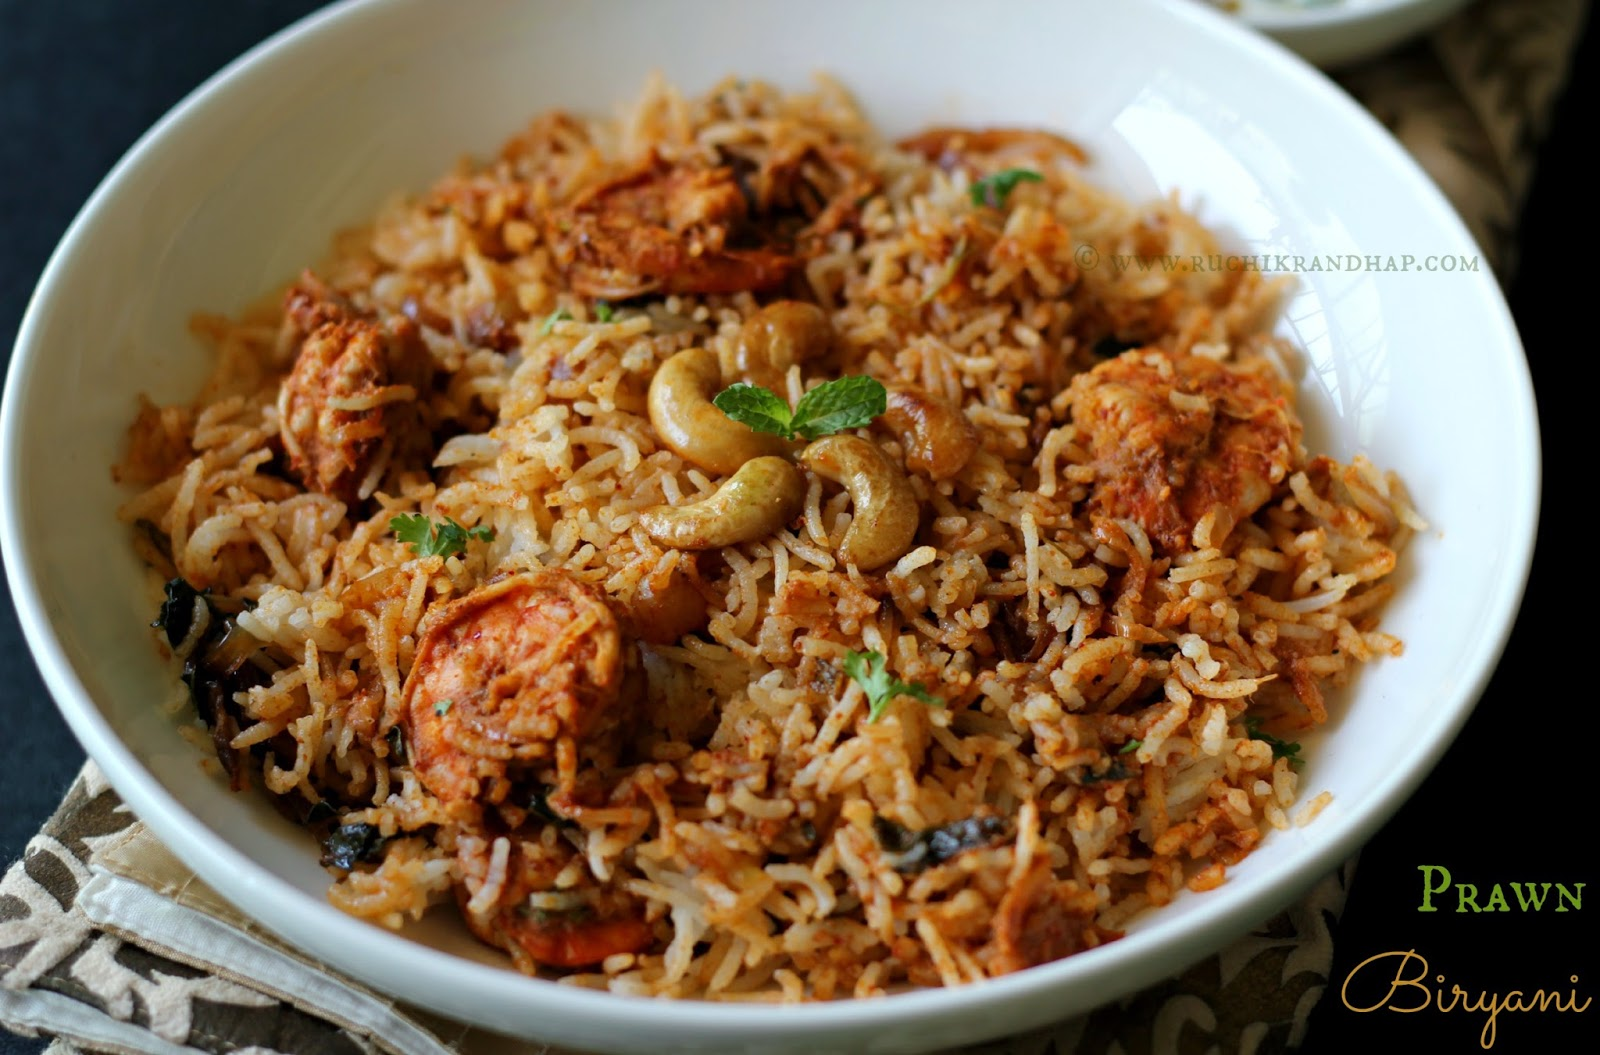 ... Randhap (Delicious Cooking): Prawn Biryani ~ When The Hubby Cooks